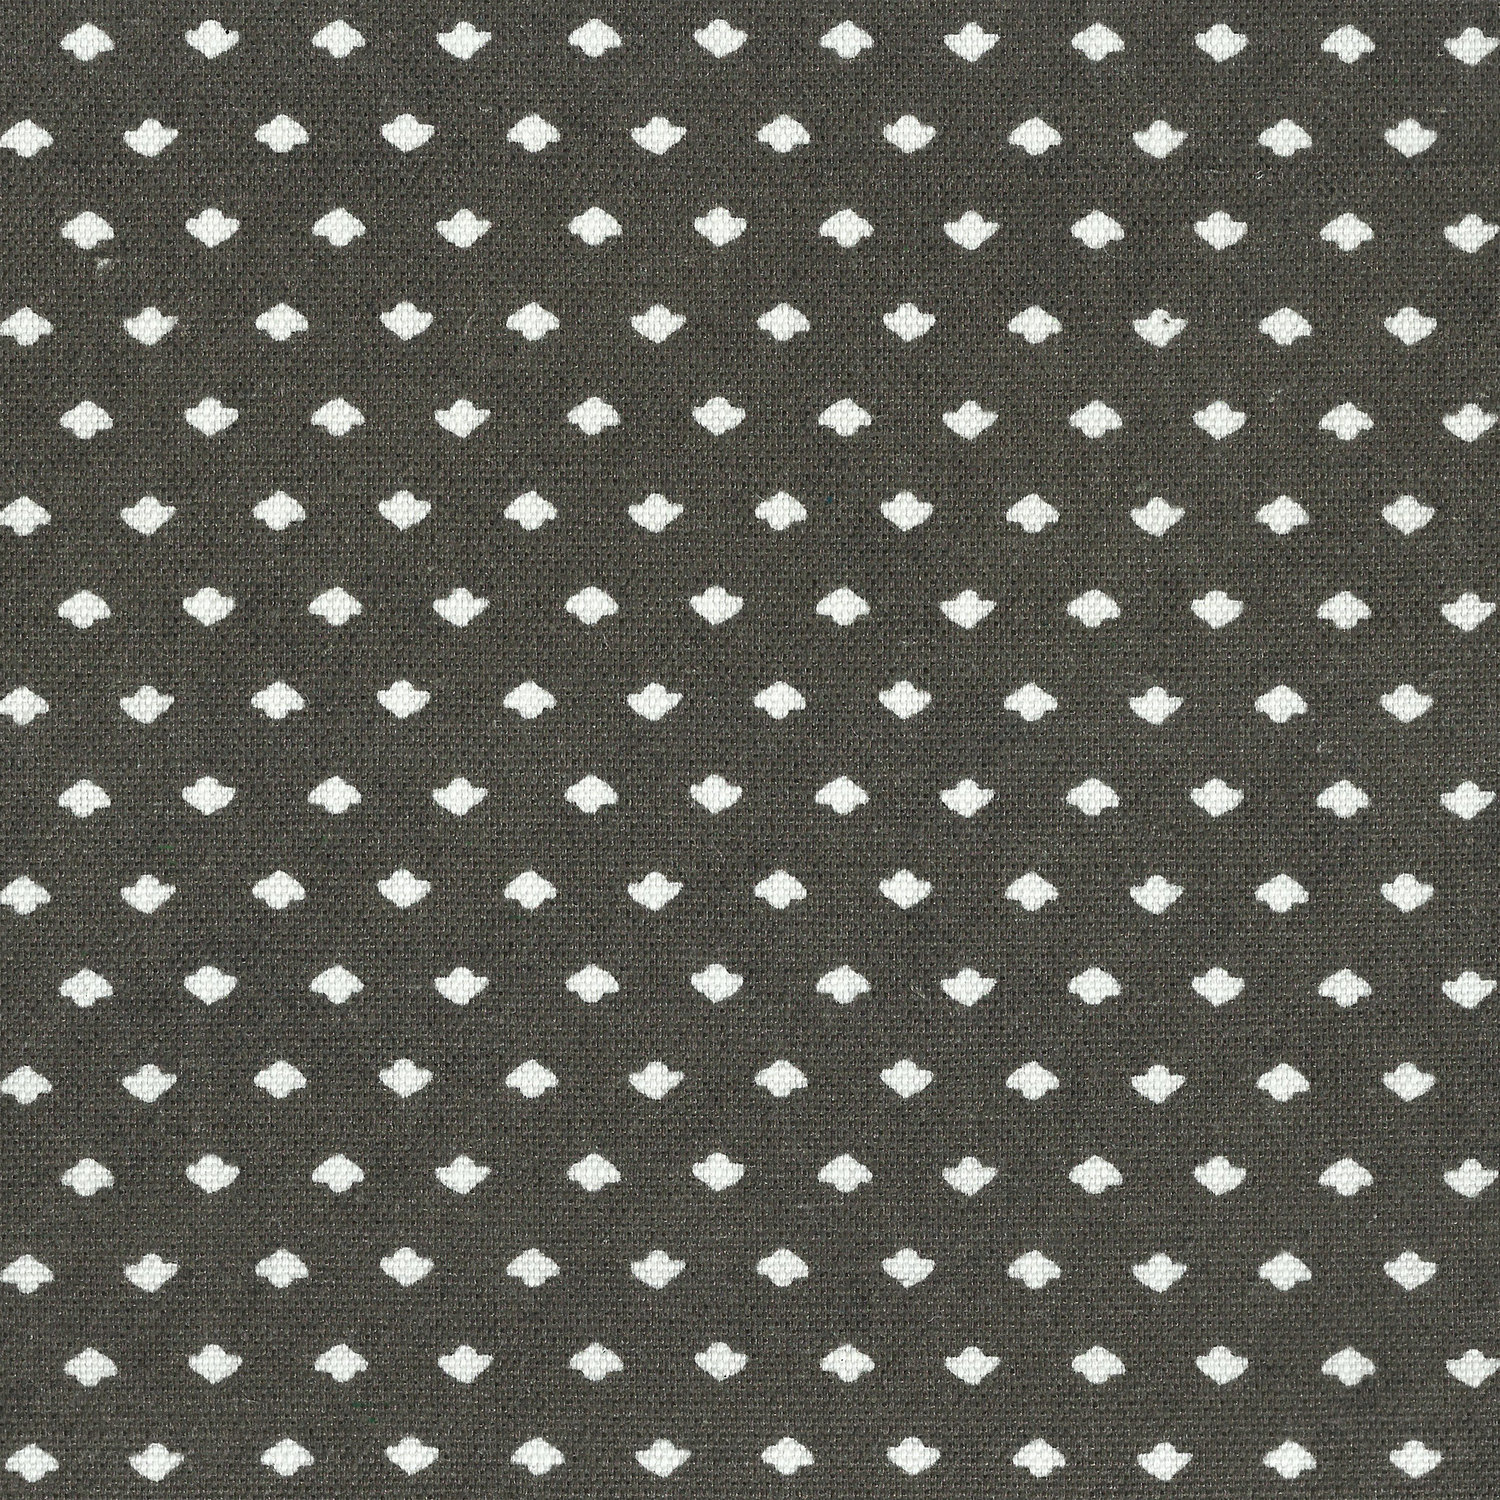 Calico Dot in Charcoal